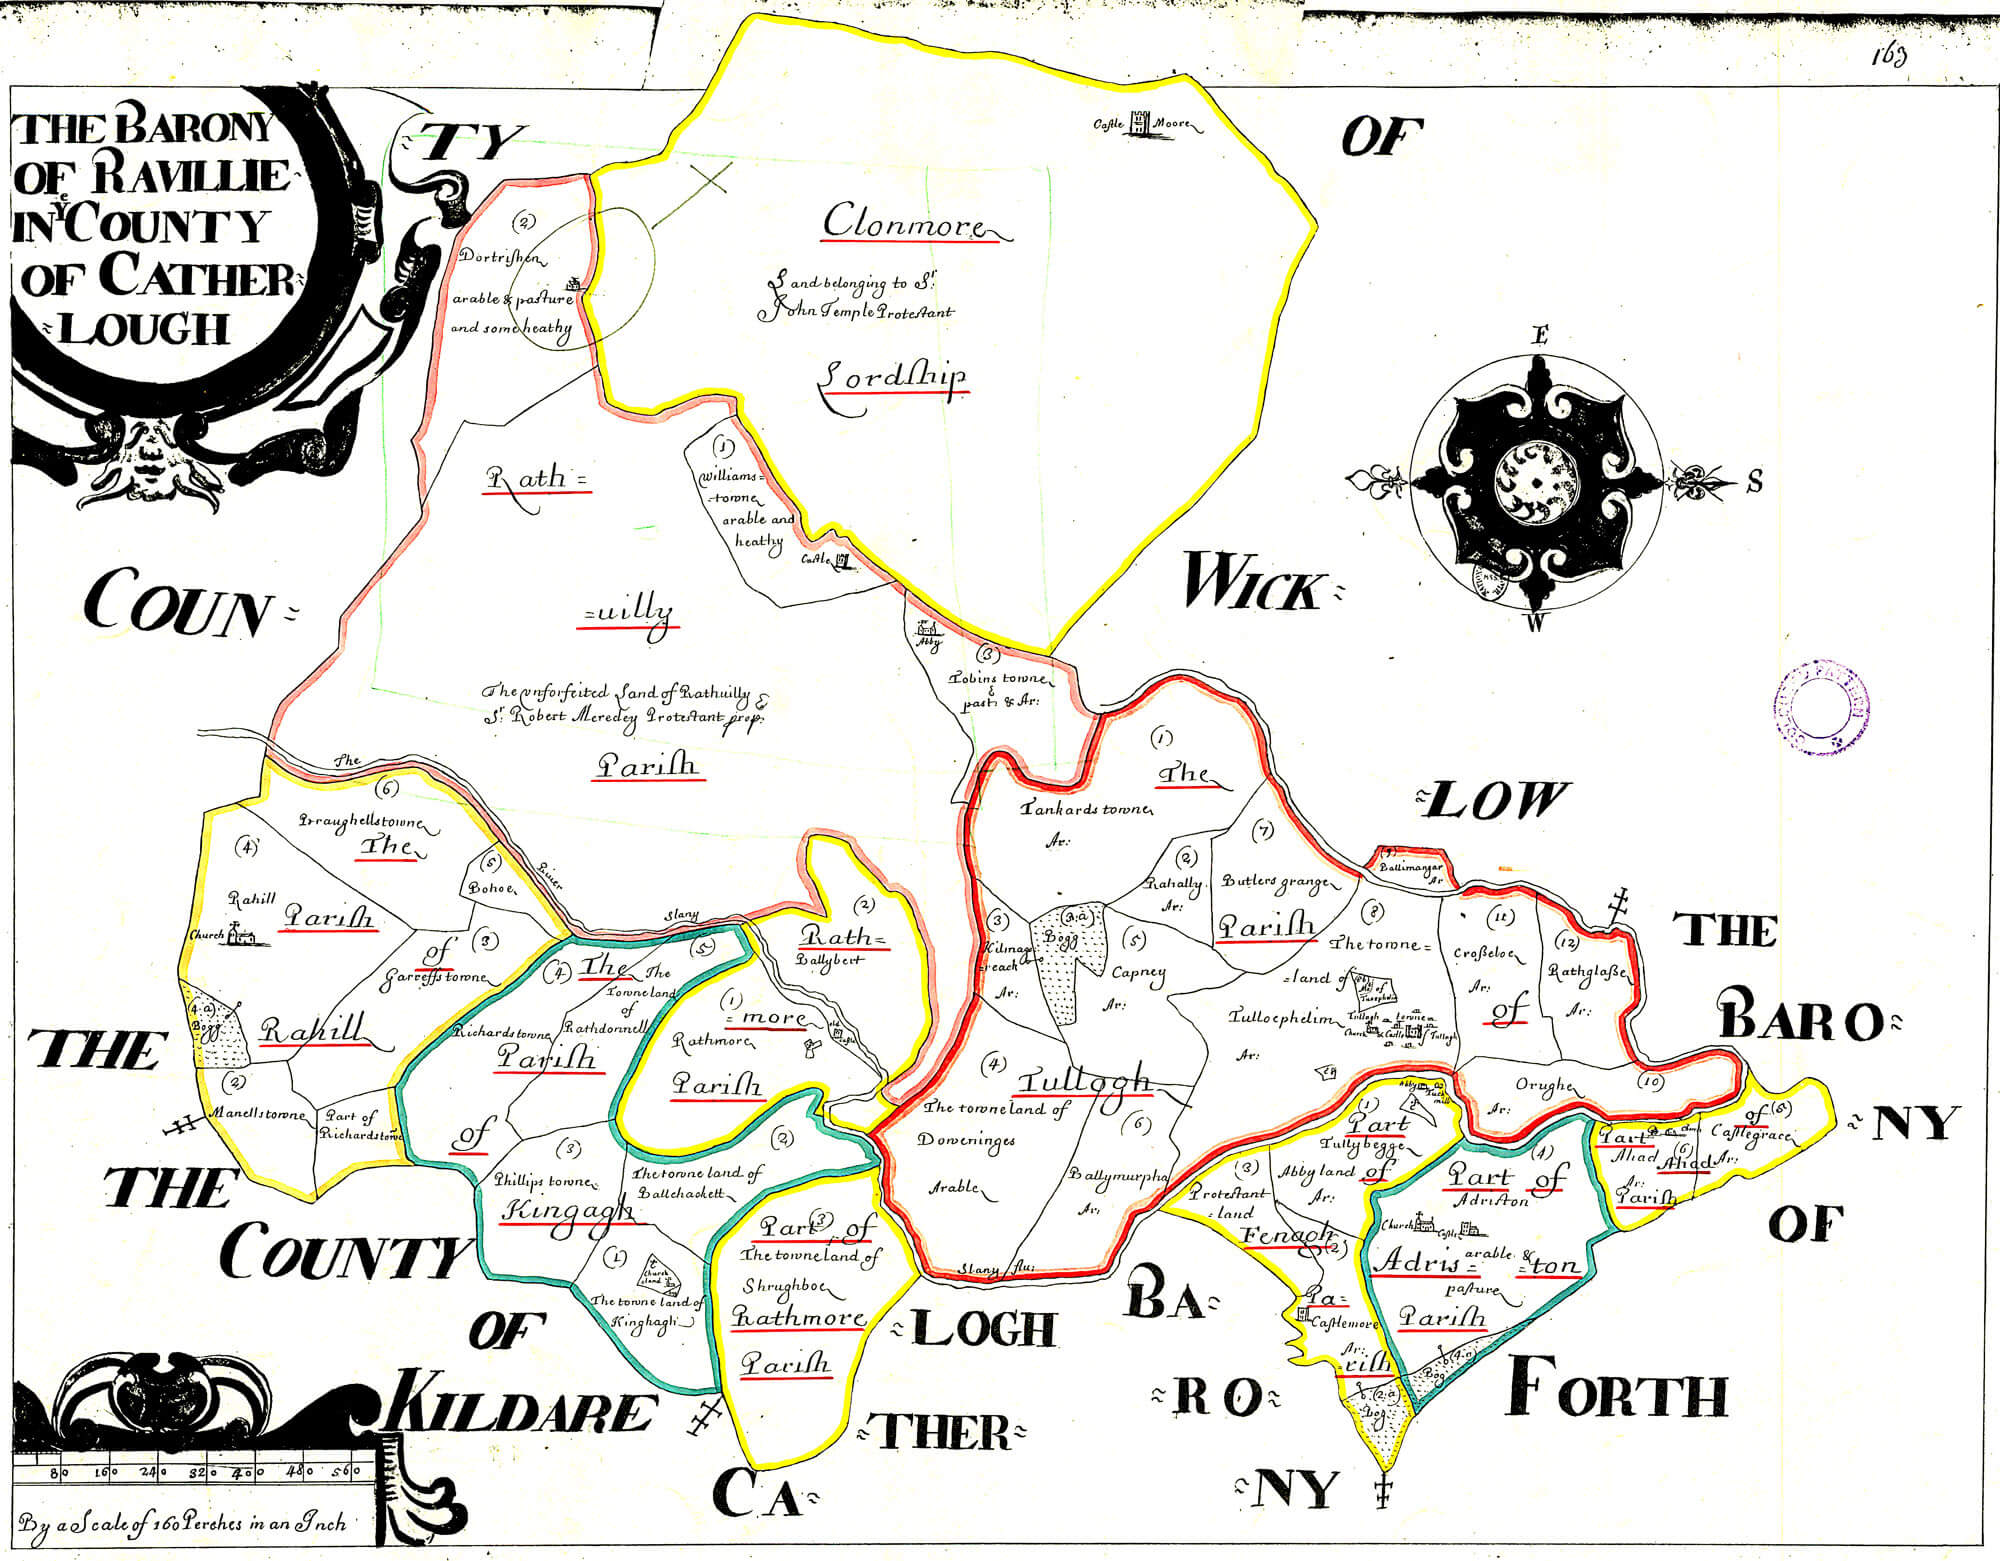 Carlow Map Of Ireland.Ireland Barony Maps County Carlow L Brown Collection